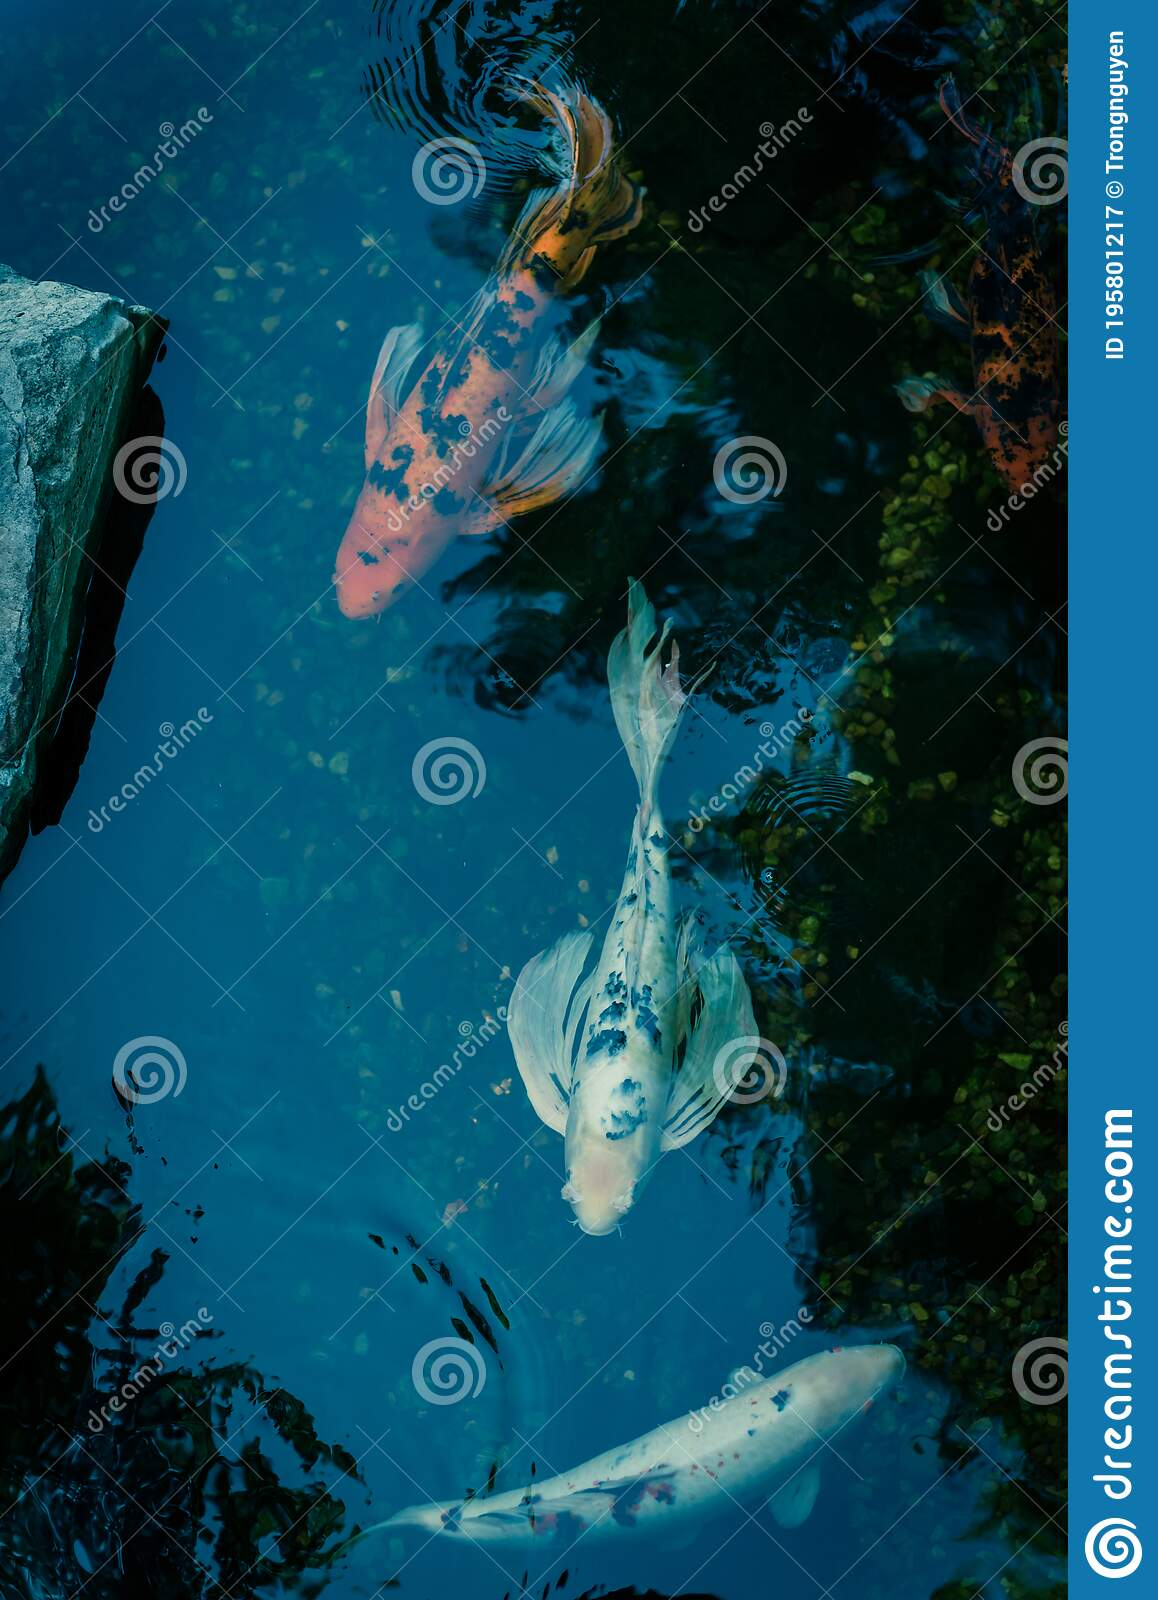 Water Garden With Landscaping Rocks And Colorful Koi Fishes Swimming Near Dallas Texas Usa Stock Image Image Of Fish Aquarium 195801217